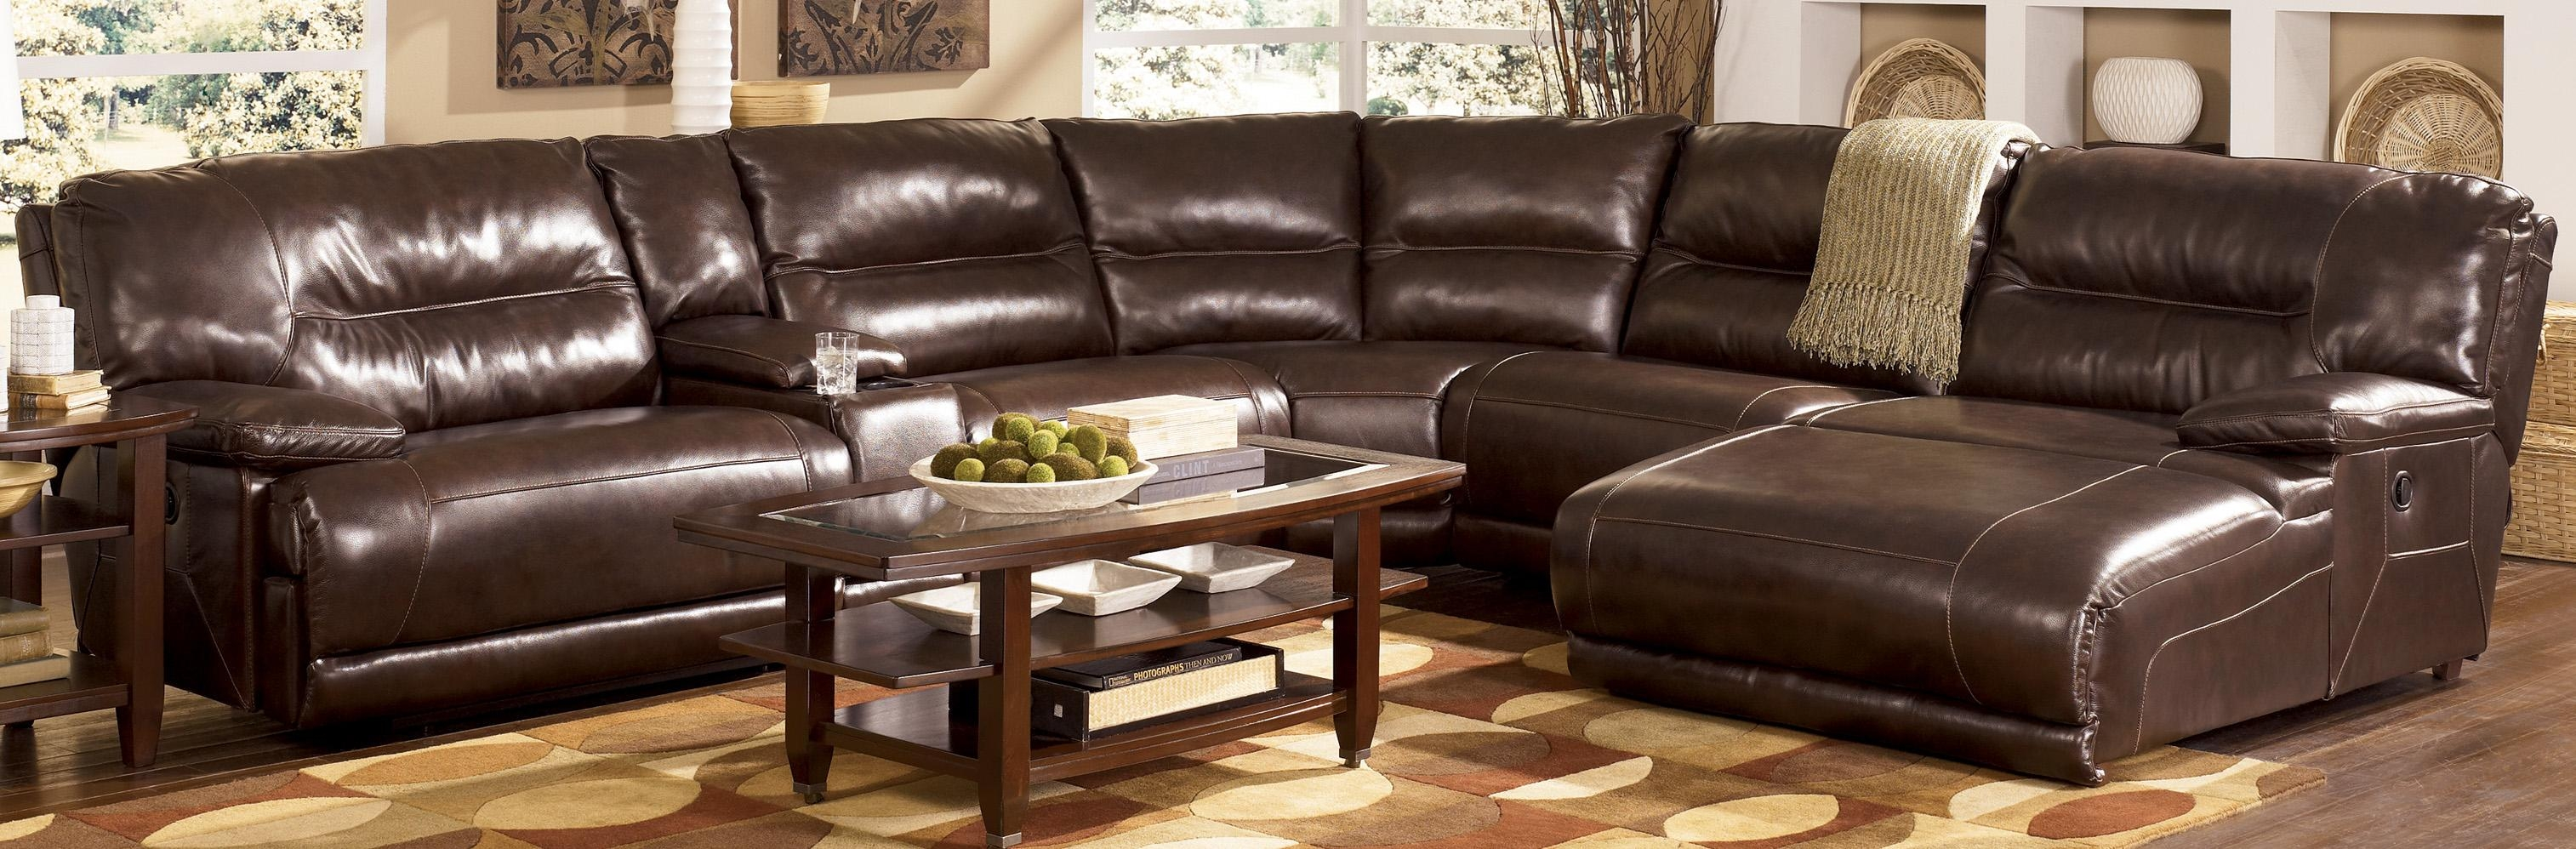 Furniture: Jedd Fabric Reclining Sectional Sofa | Sectional For Jedd Fabric Reclining Sectional Sofa (Image 9 of 20)